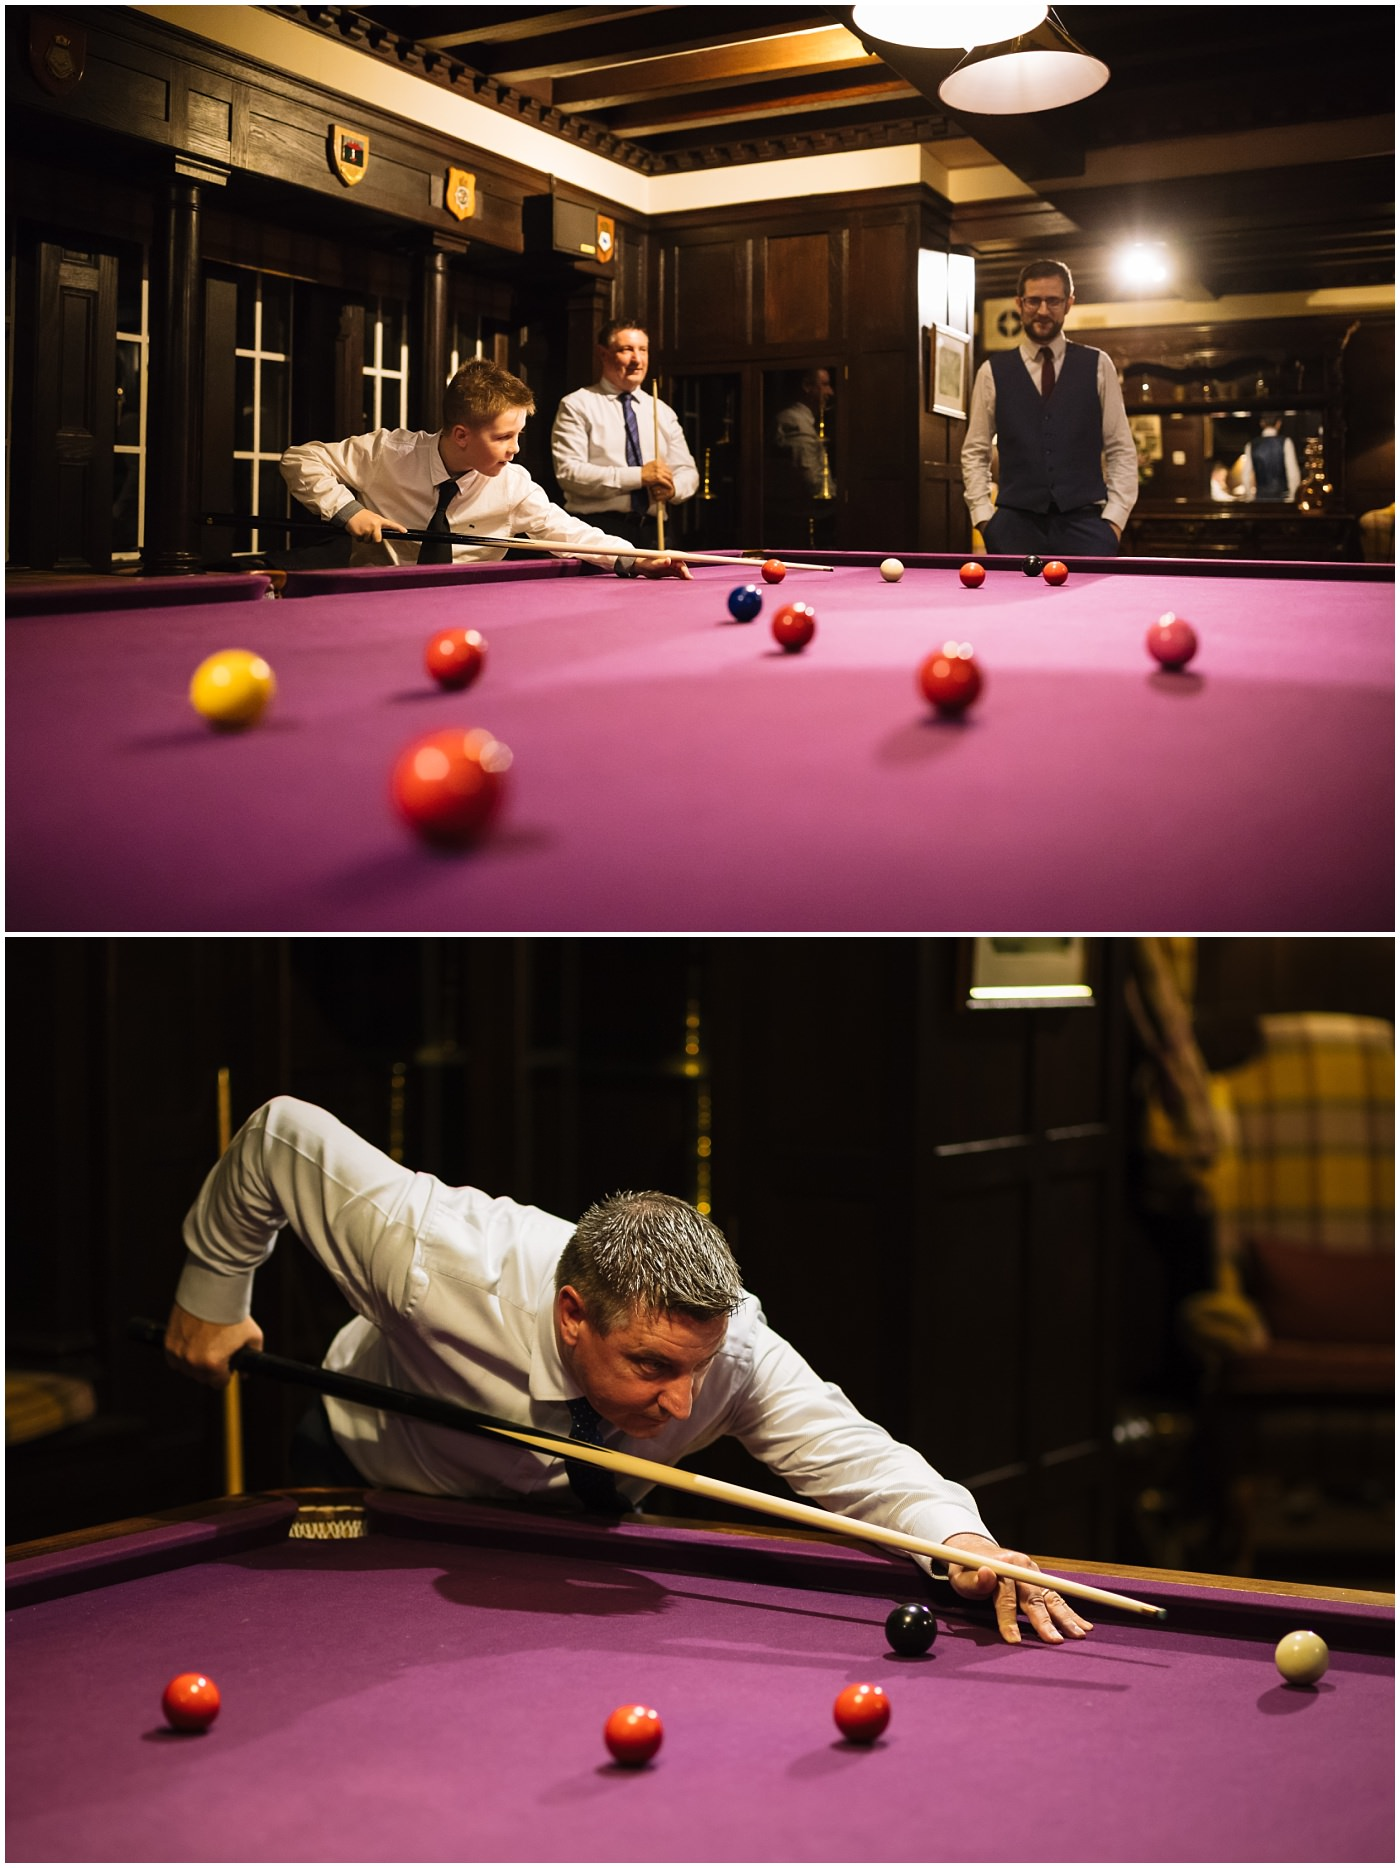 Guests in the snooker room at Eaves Hall